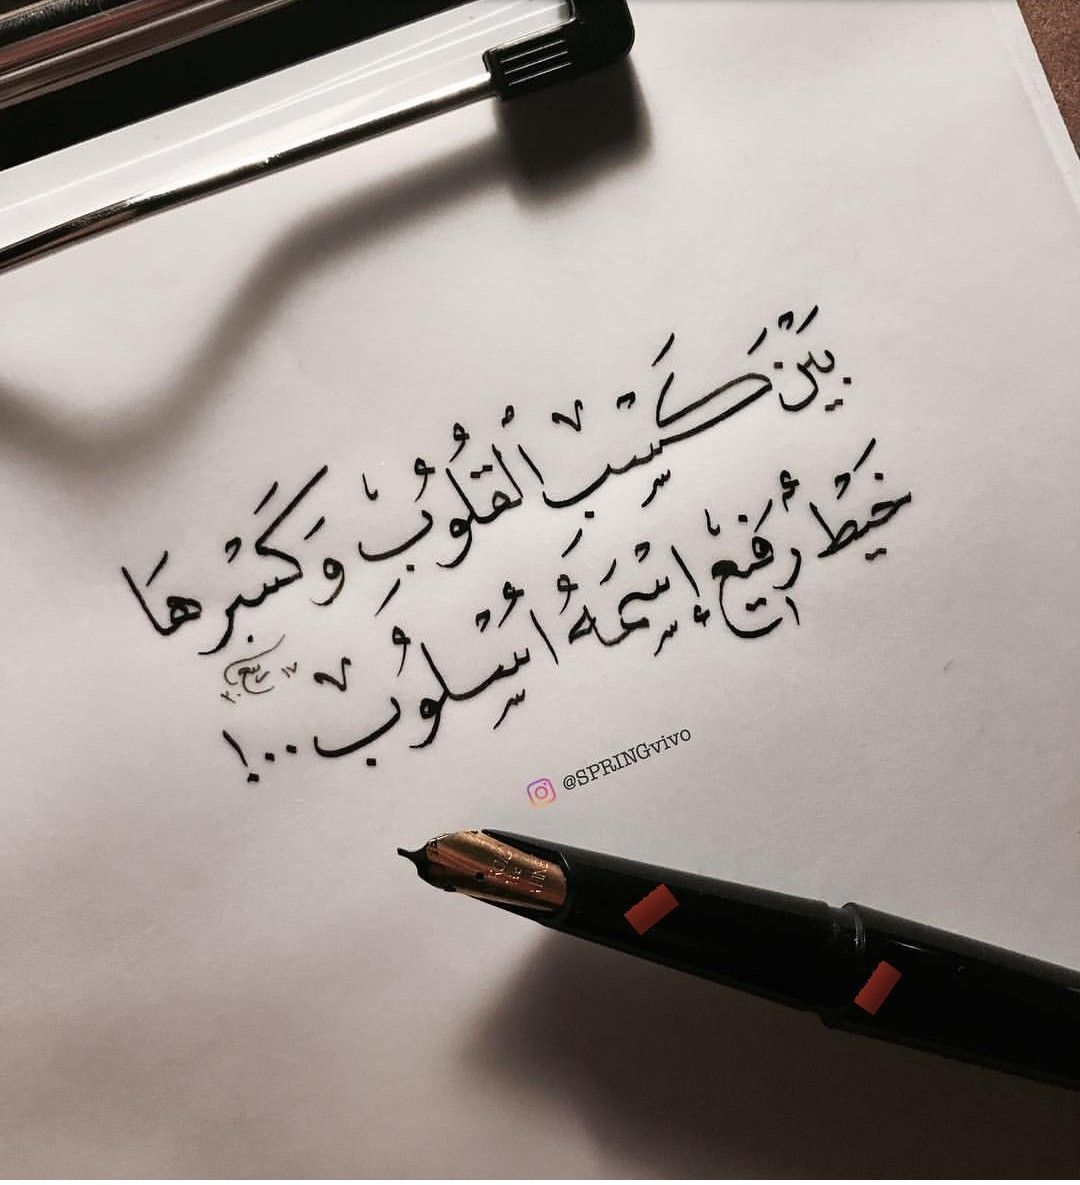 عشق و حب Calligraphy Quotes Love Words Quotes Iphone Wallpaper Quotes Love